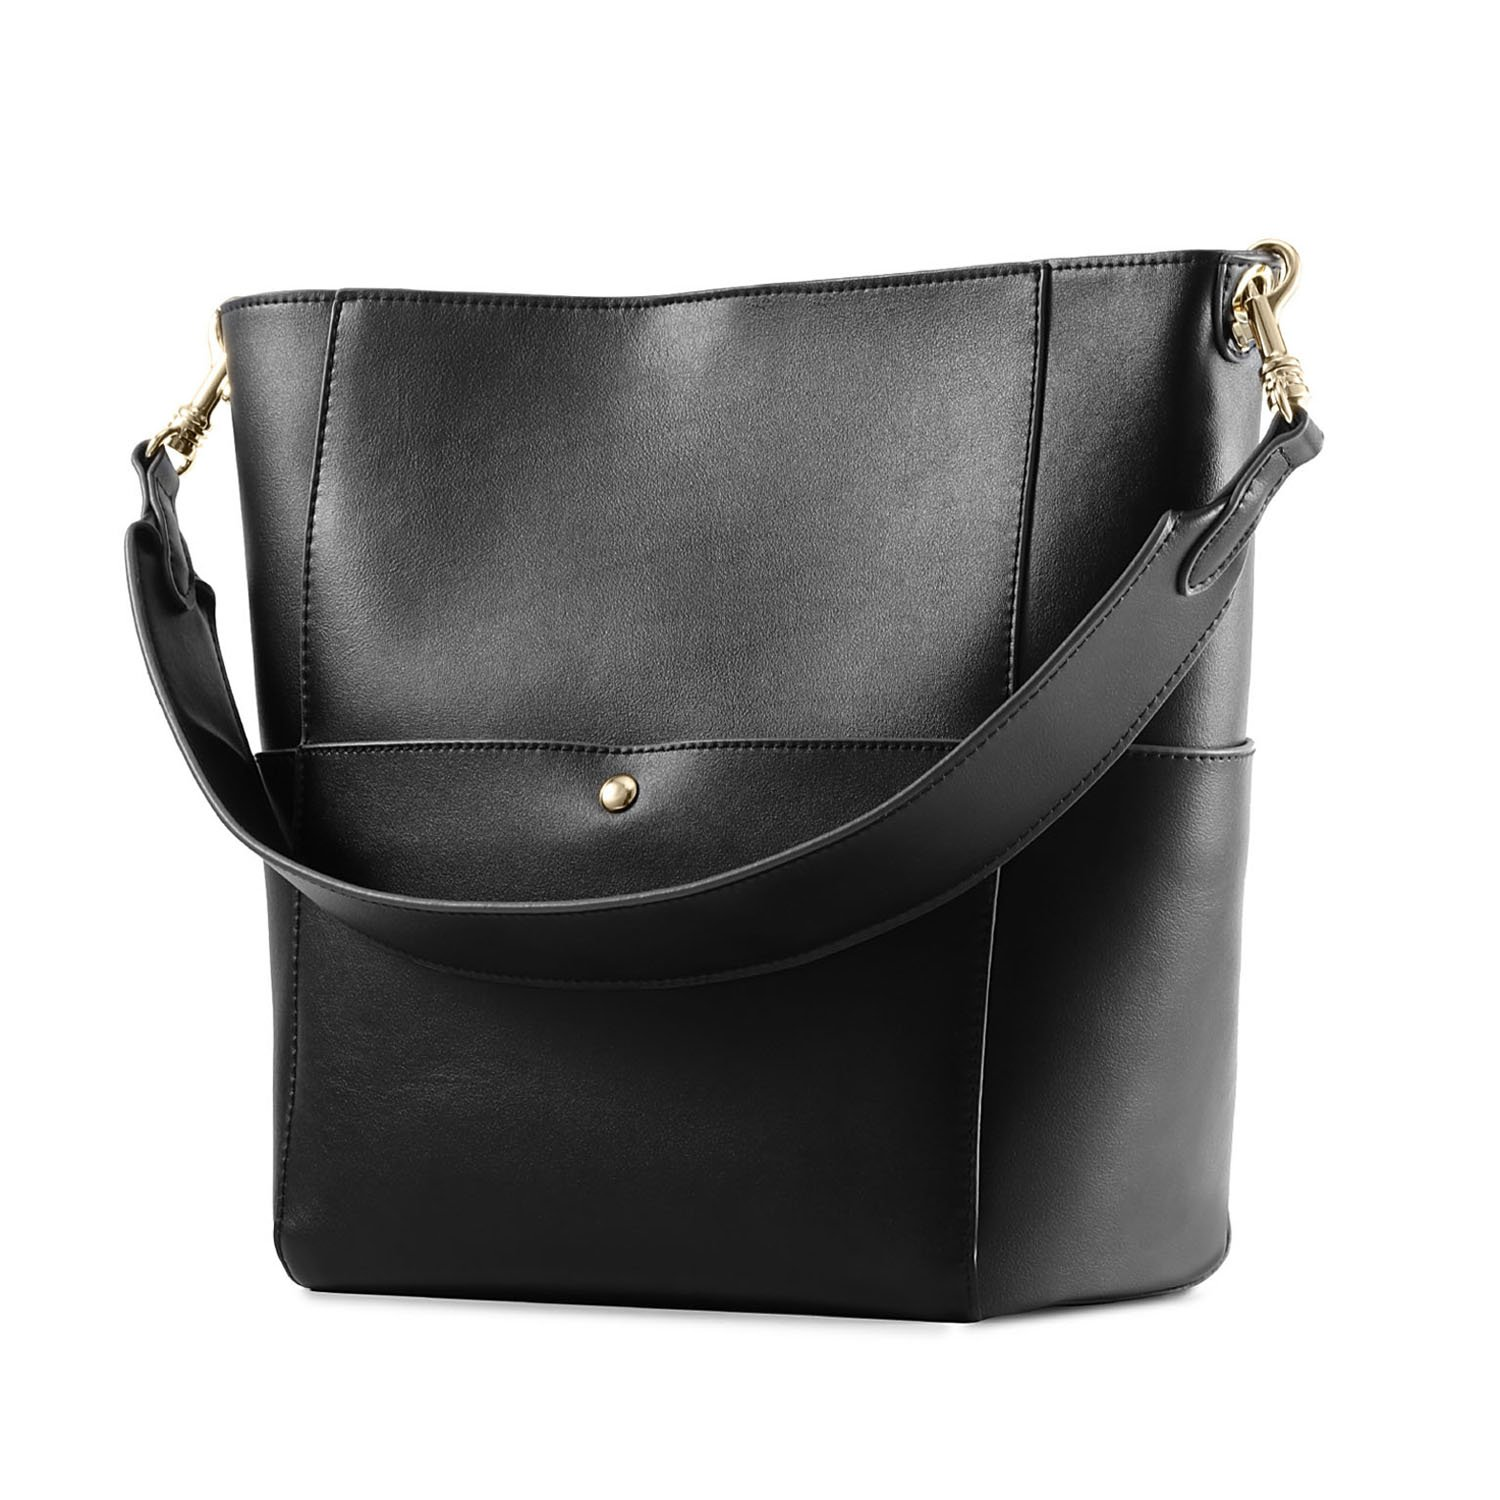 2b4e824e5d Amazon.com  Kattee Women s Cowhide Leather Tote Shoulder Bag Hobo Handbag  Shoulder Bucket Bag (Black)  Shoes